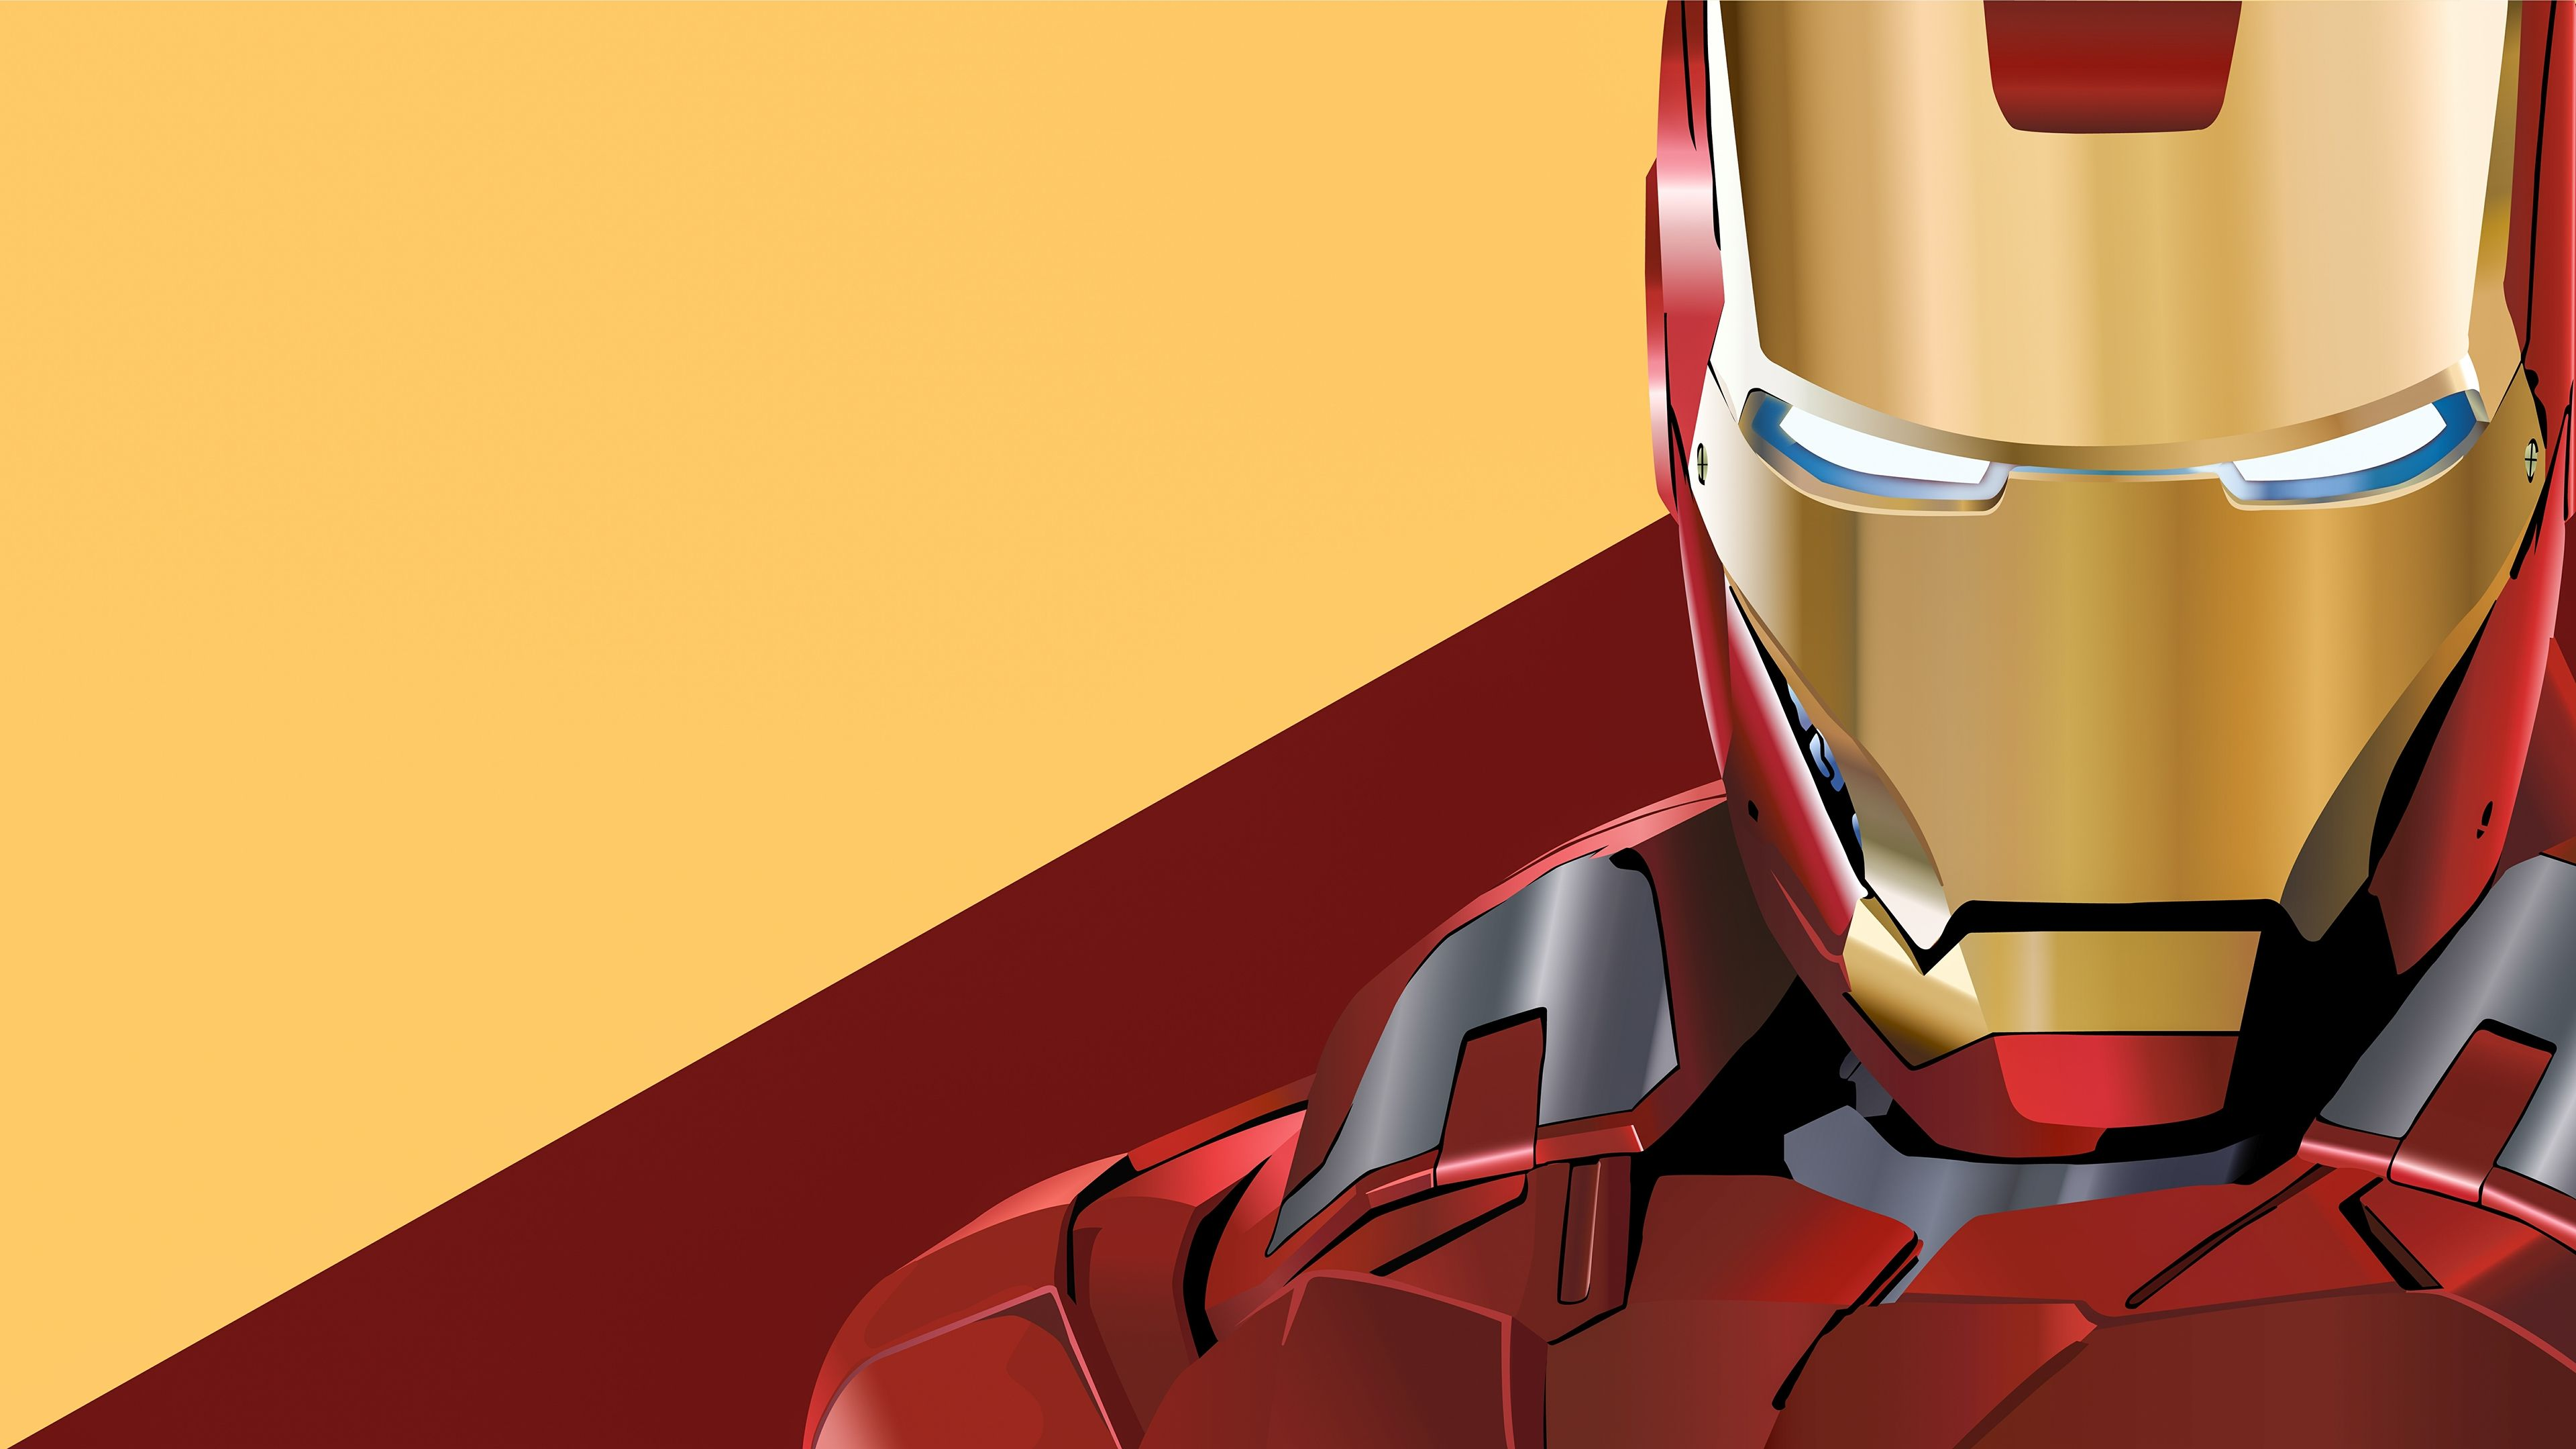 Iron Man Digital Artwork 4k Superheroes Wallpapers Iron Man Wallpapers Hd Wallpapers Digital Art Wallpapers Beh Iron Man Wallpaper Iron Man Digital Artwork